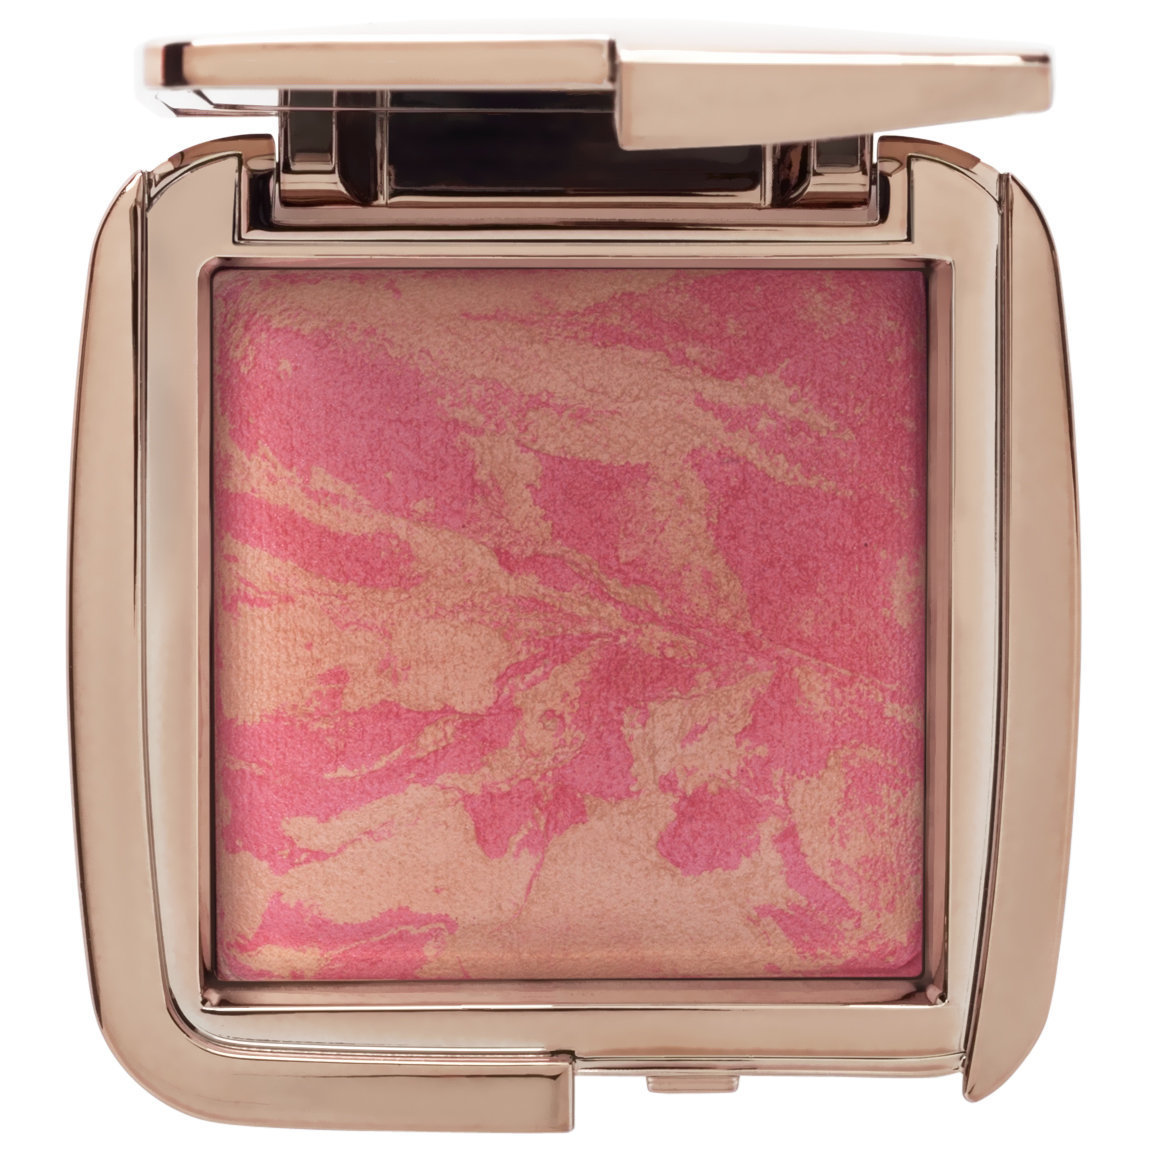 Румяна Hourglass Ambient Lighting Blush Luminous Flush 4.2 g